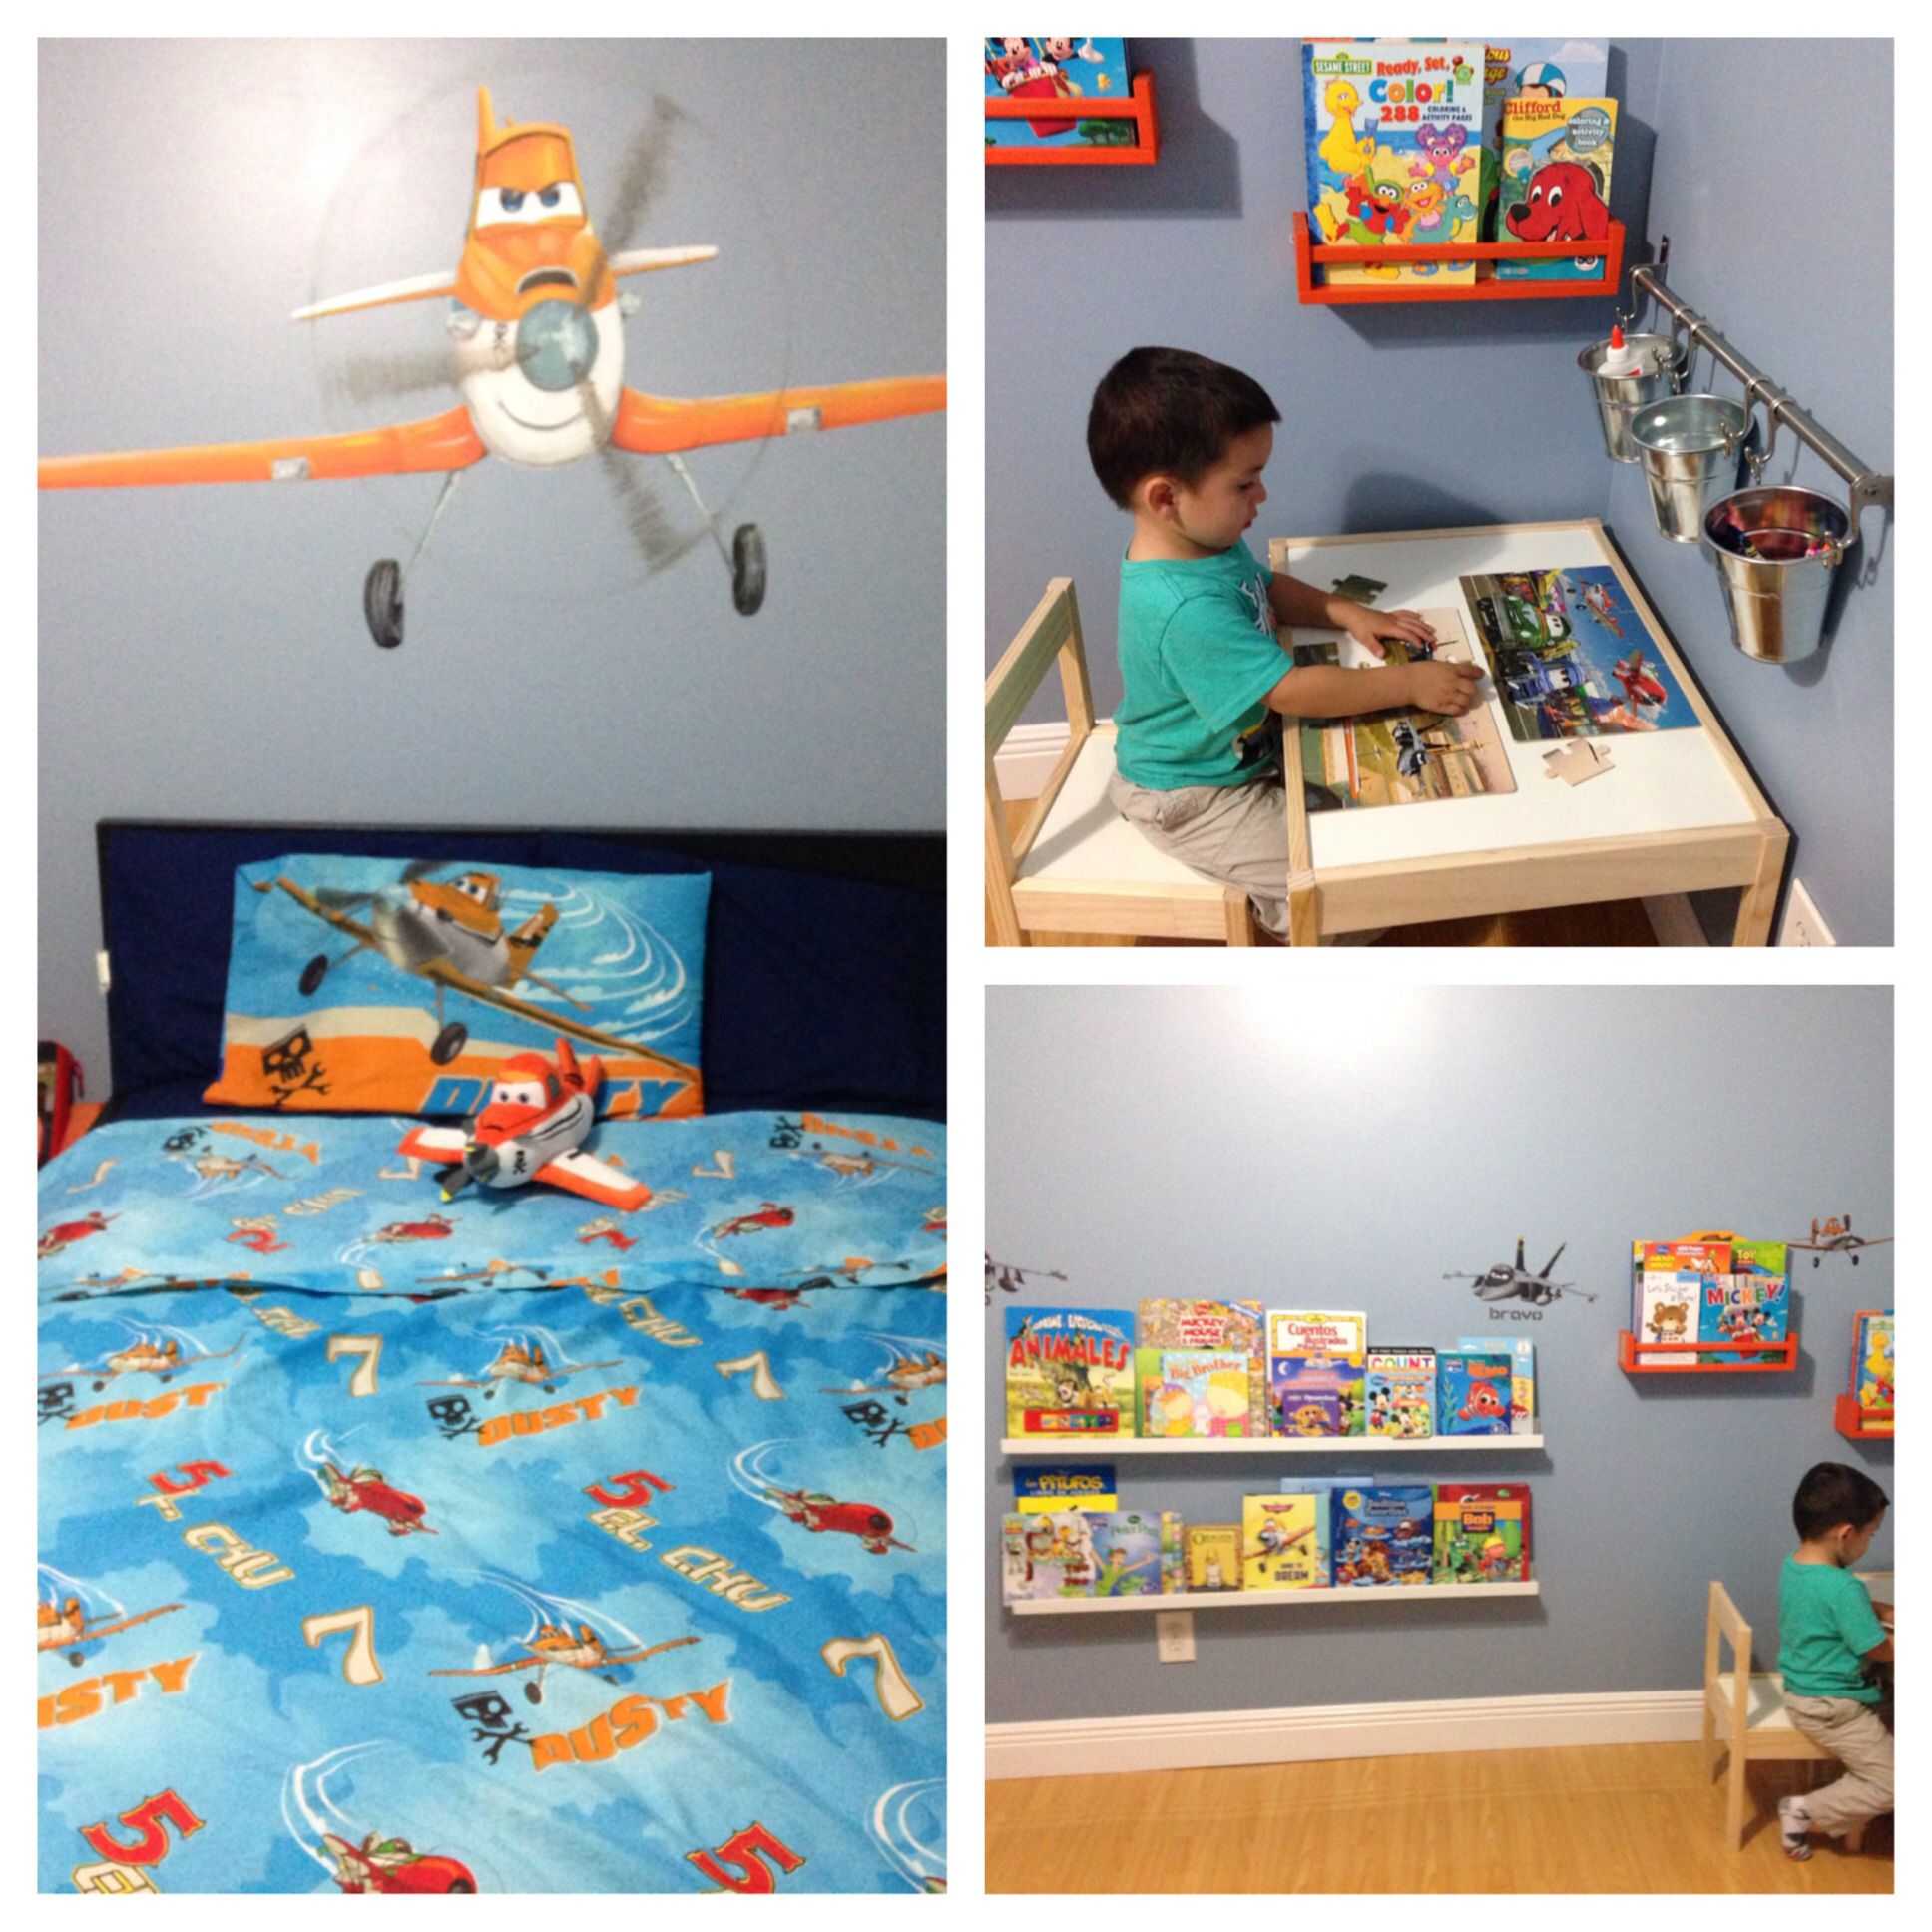 Dusty Planes Themed Room. Toddler Art Corner DIY Dusty Wall Art Is Painted  Mural South